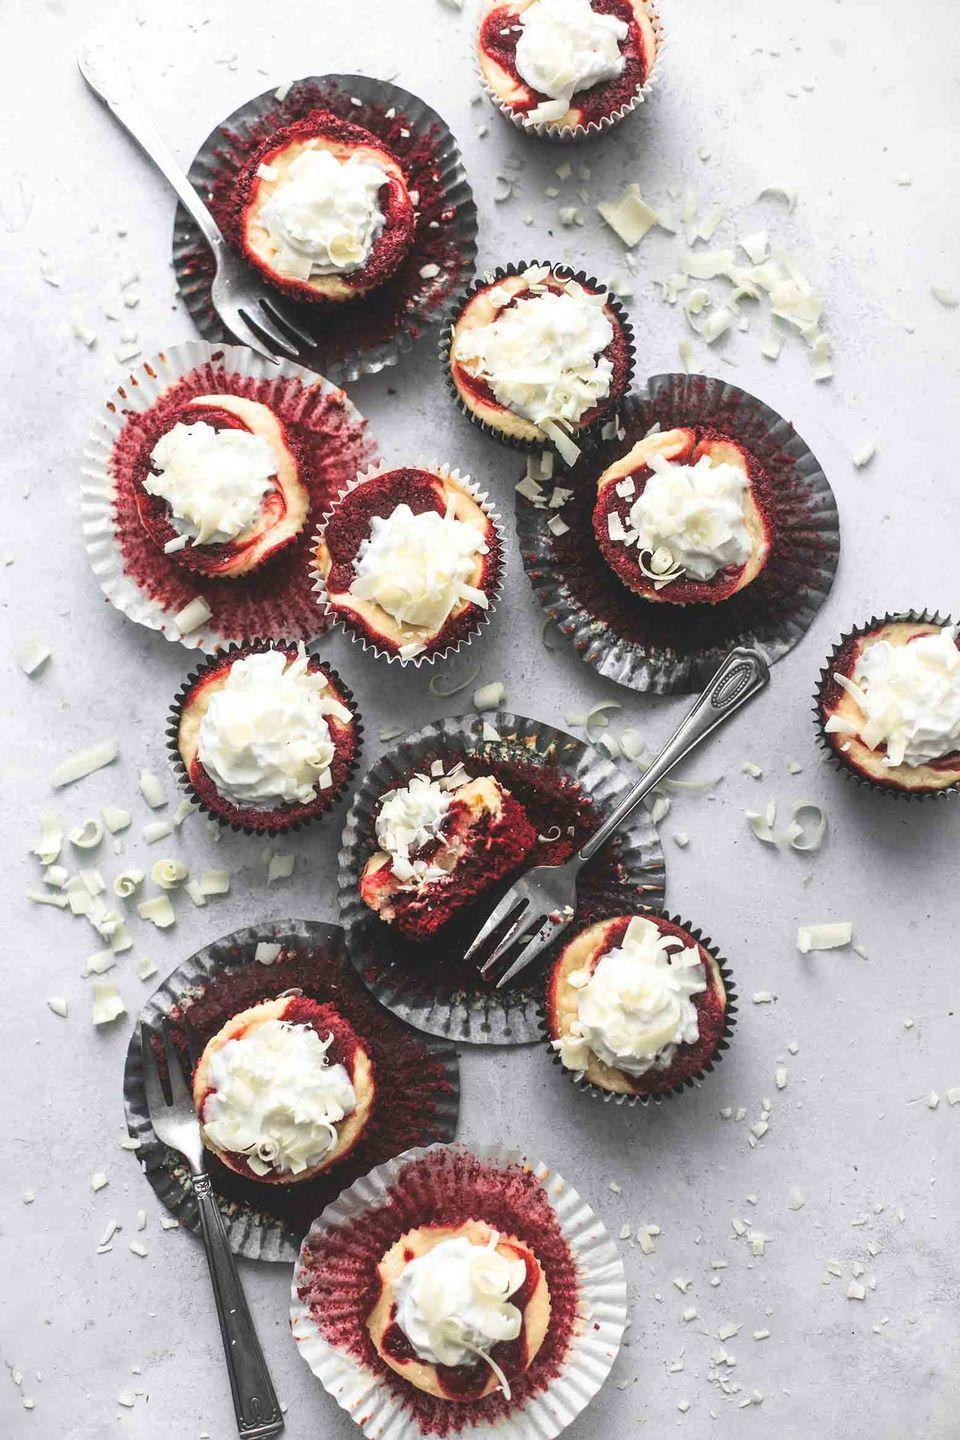 "<p>Enjoy a rich bite of cheesecake without filling up, so you can still sample all the other desserts!</p><p><strong>Get the recipe at <a href=""https://www.lecremedelacrumb.com/red-velvet-cheesecake-bites/"" rel=""nofollow noopener"" target=""_blank"" data-ylk=""slk:Creme de la Crumb"" class=""link rapid-noclick-resp"">Creme de la Crumb</a>.</strong></p><p><strong><a class=""link rapid-noclick-resp"" href=""https://www.amazon.com/DmofwHi-Electric-Kitchen-Stainless-Attachments/dp/B07GPRHGM4/?tag=syn-yahoo-20&ascsubtag=%5Bartid%7C10050.g.1138%5Bsrc%7Cyahoo-us"" rel=""nofollow noopener"" target=""_blank"" data-ylk=""slk:SHOP HAND MIXERS"">SHOP HAND MIXERS</a><br></strong></p>"